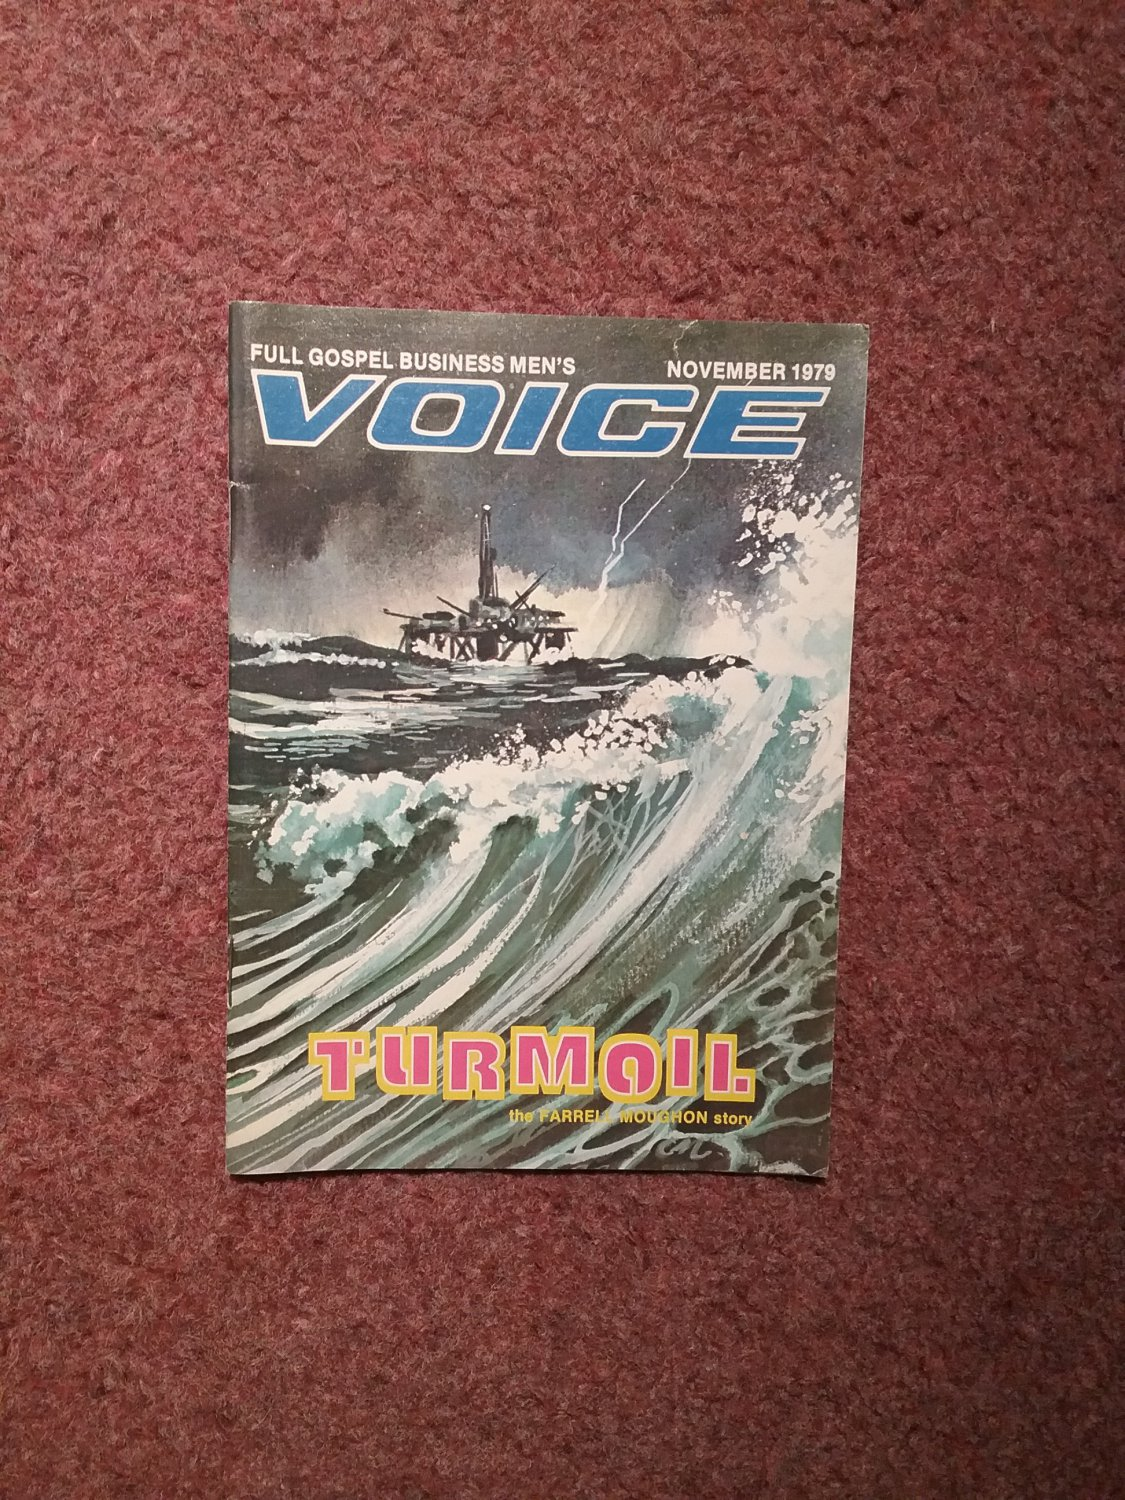 Full Gospel Business Men's Voice Magazine, November 1979  0707161357